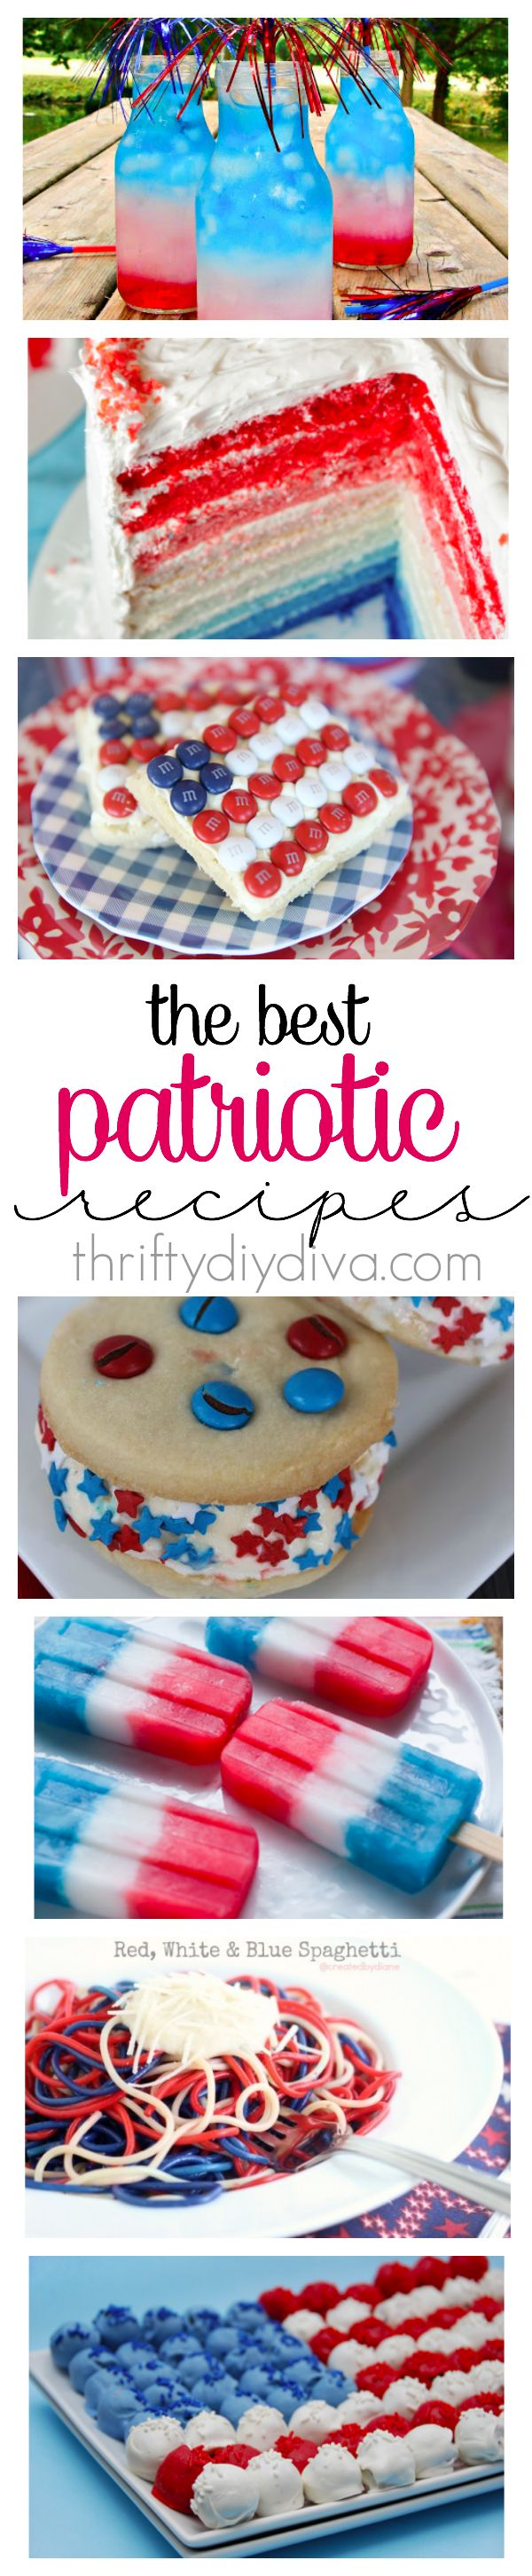 Awesome ideas of 4th of July Recipes and Red White and Blue recipes To Celebrate America's Birthday at your Party! I love these Patriotic Red, White and Blue recipes full of drinks, desserts, and even spaghetti!